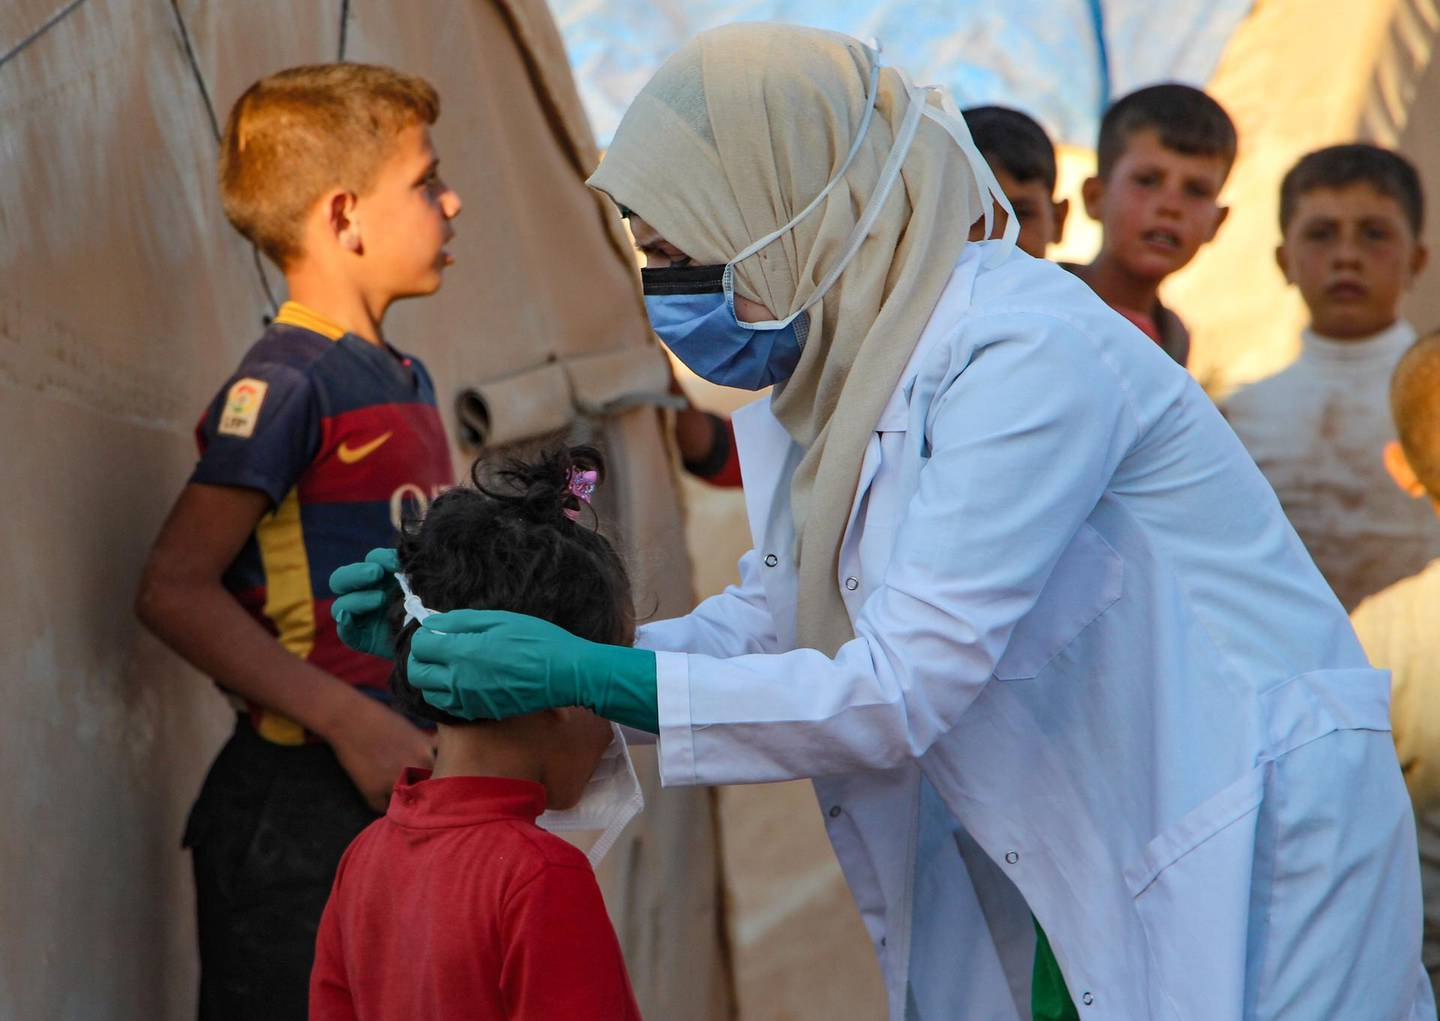 A Syrian doctor, on her own initiative, instructs children how to properly wear a mask during the novel coronavirus pandemic crisis, in the displacement camp of Janid near the town of Dana, east of the Turkish-Syrian border in the northwestern Idlib province, on July 26, 2020.   / AFP / Ibrahim YASOUF